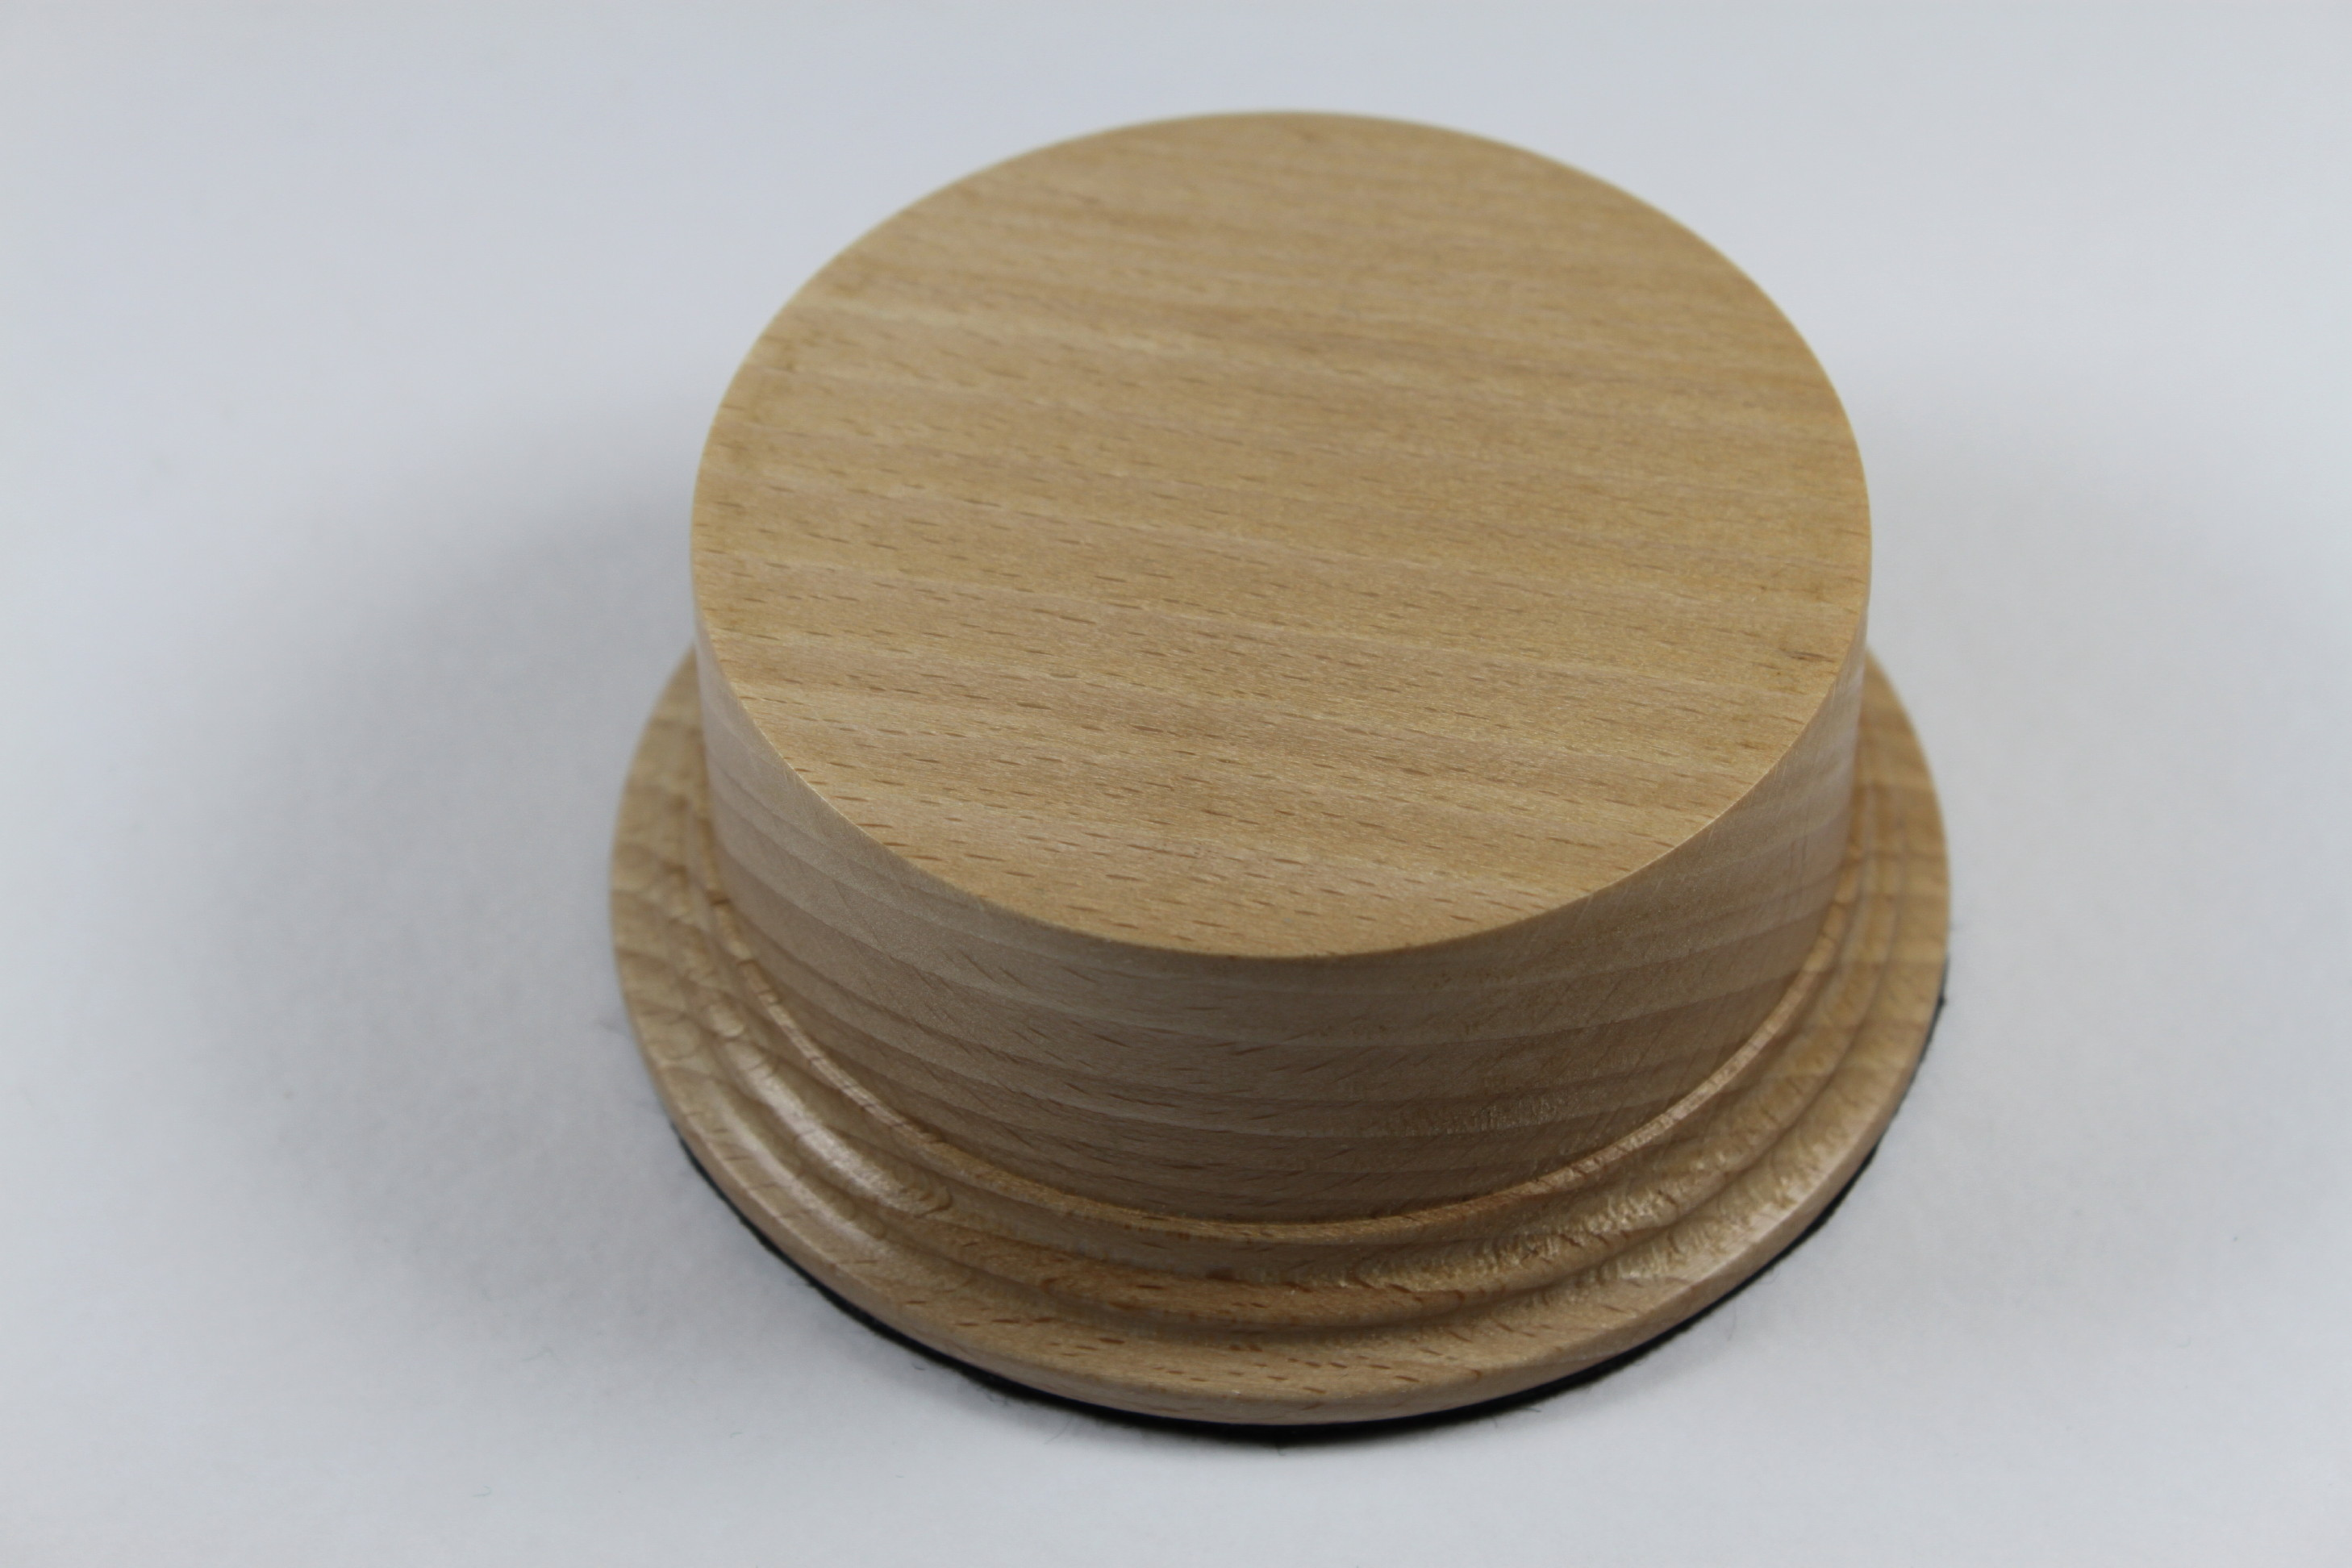 A Beech Model / Trophy Base 40mm High with a display area of 78mm